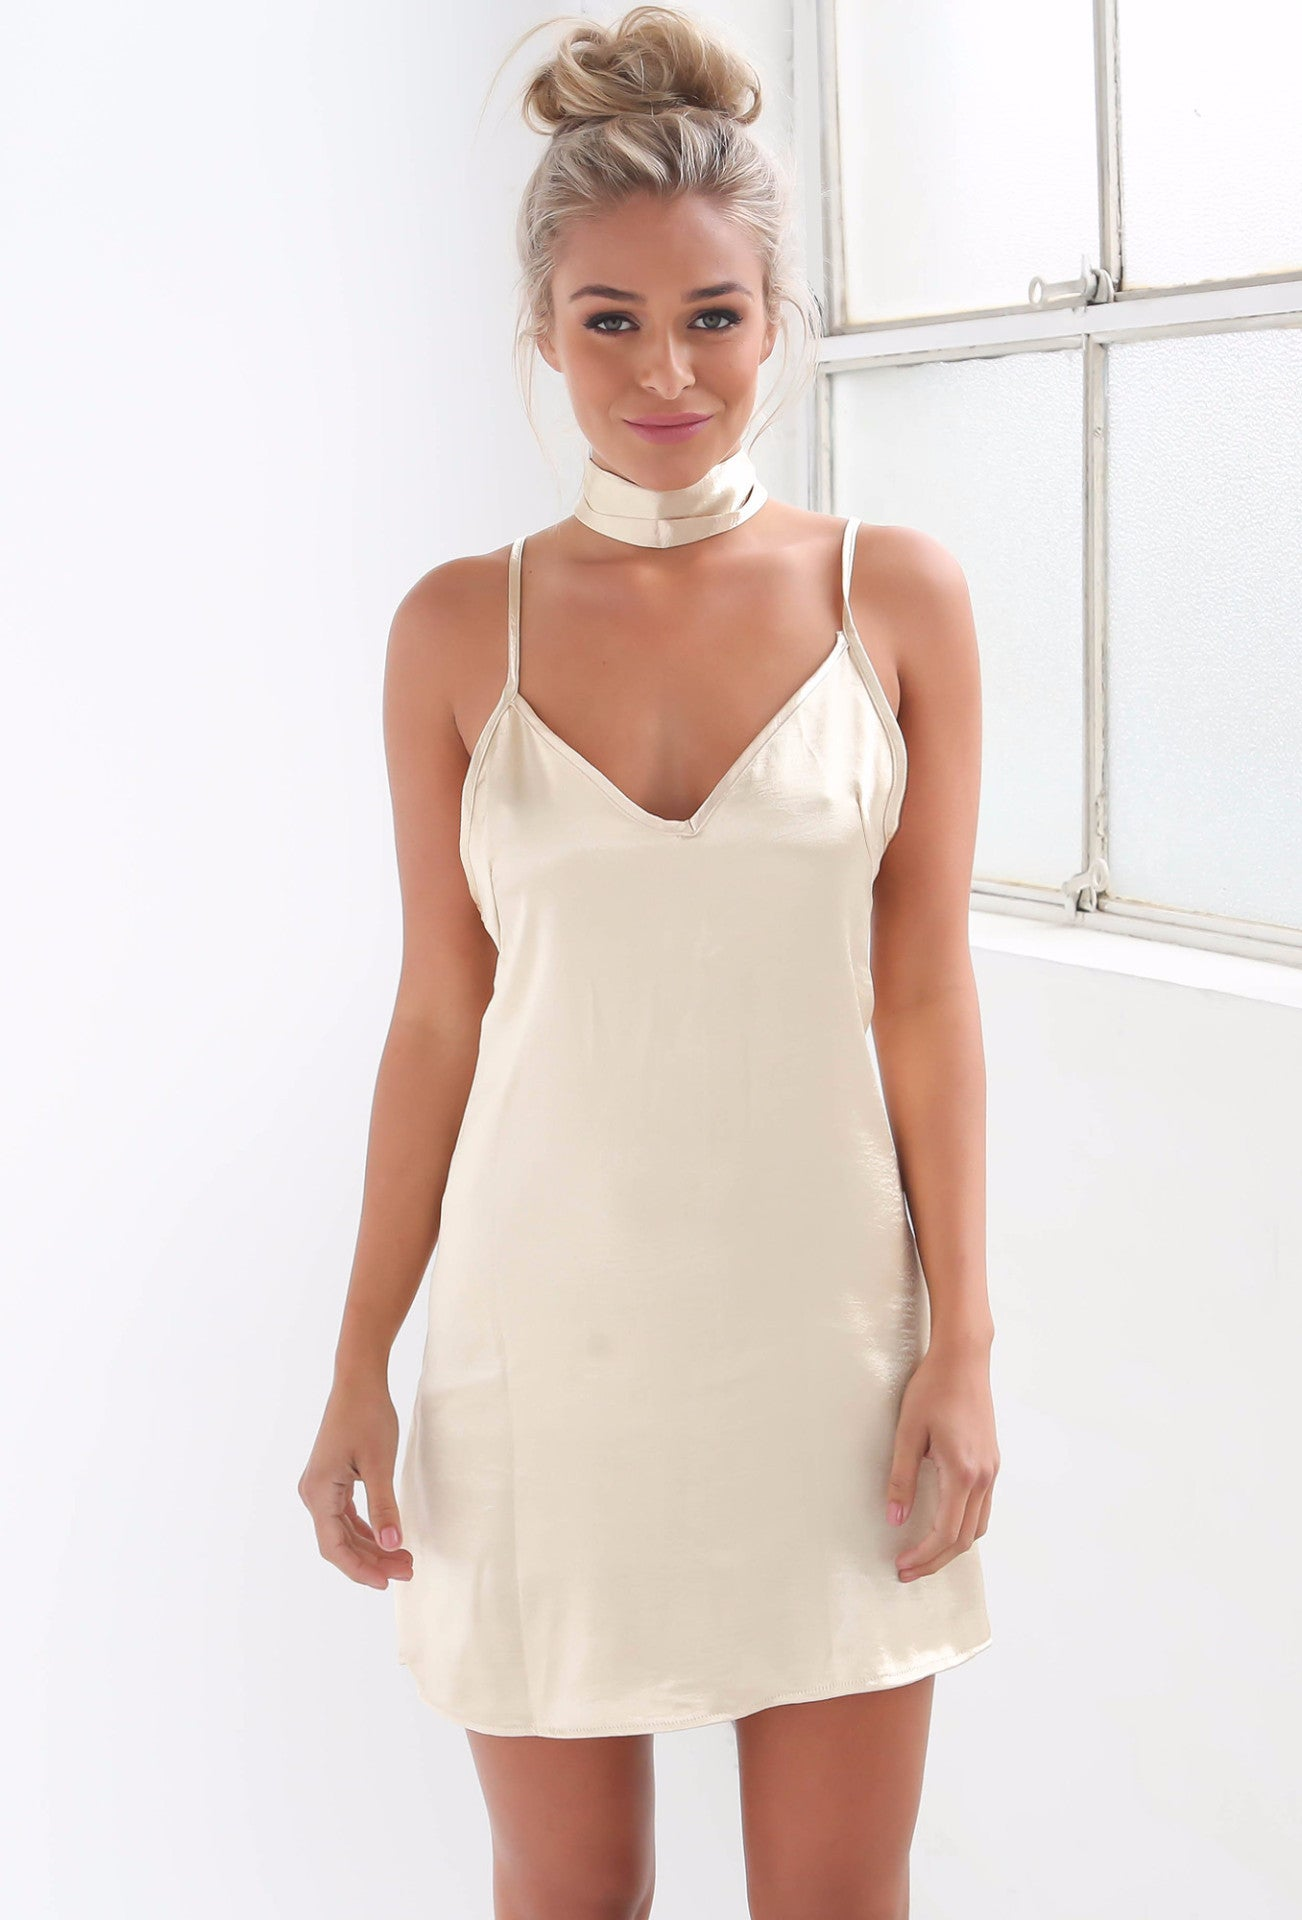 Kendall Slip Dress - Champagne - Lovecy - 5